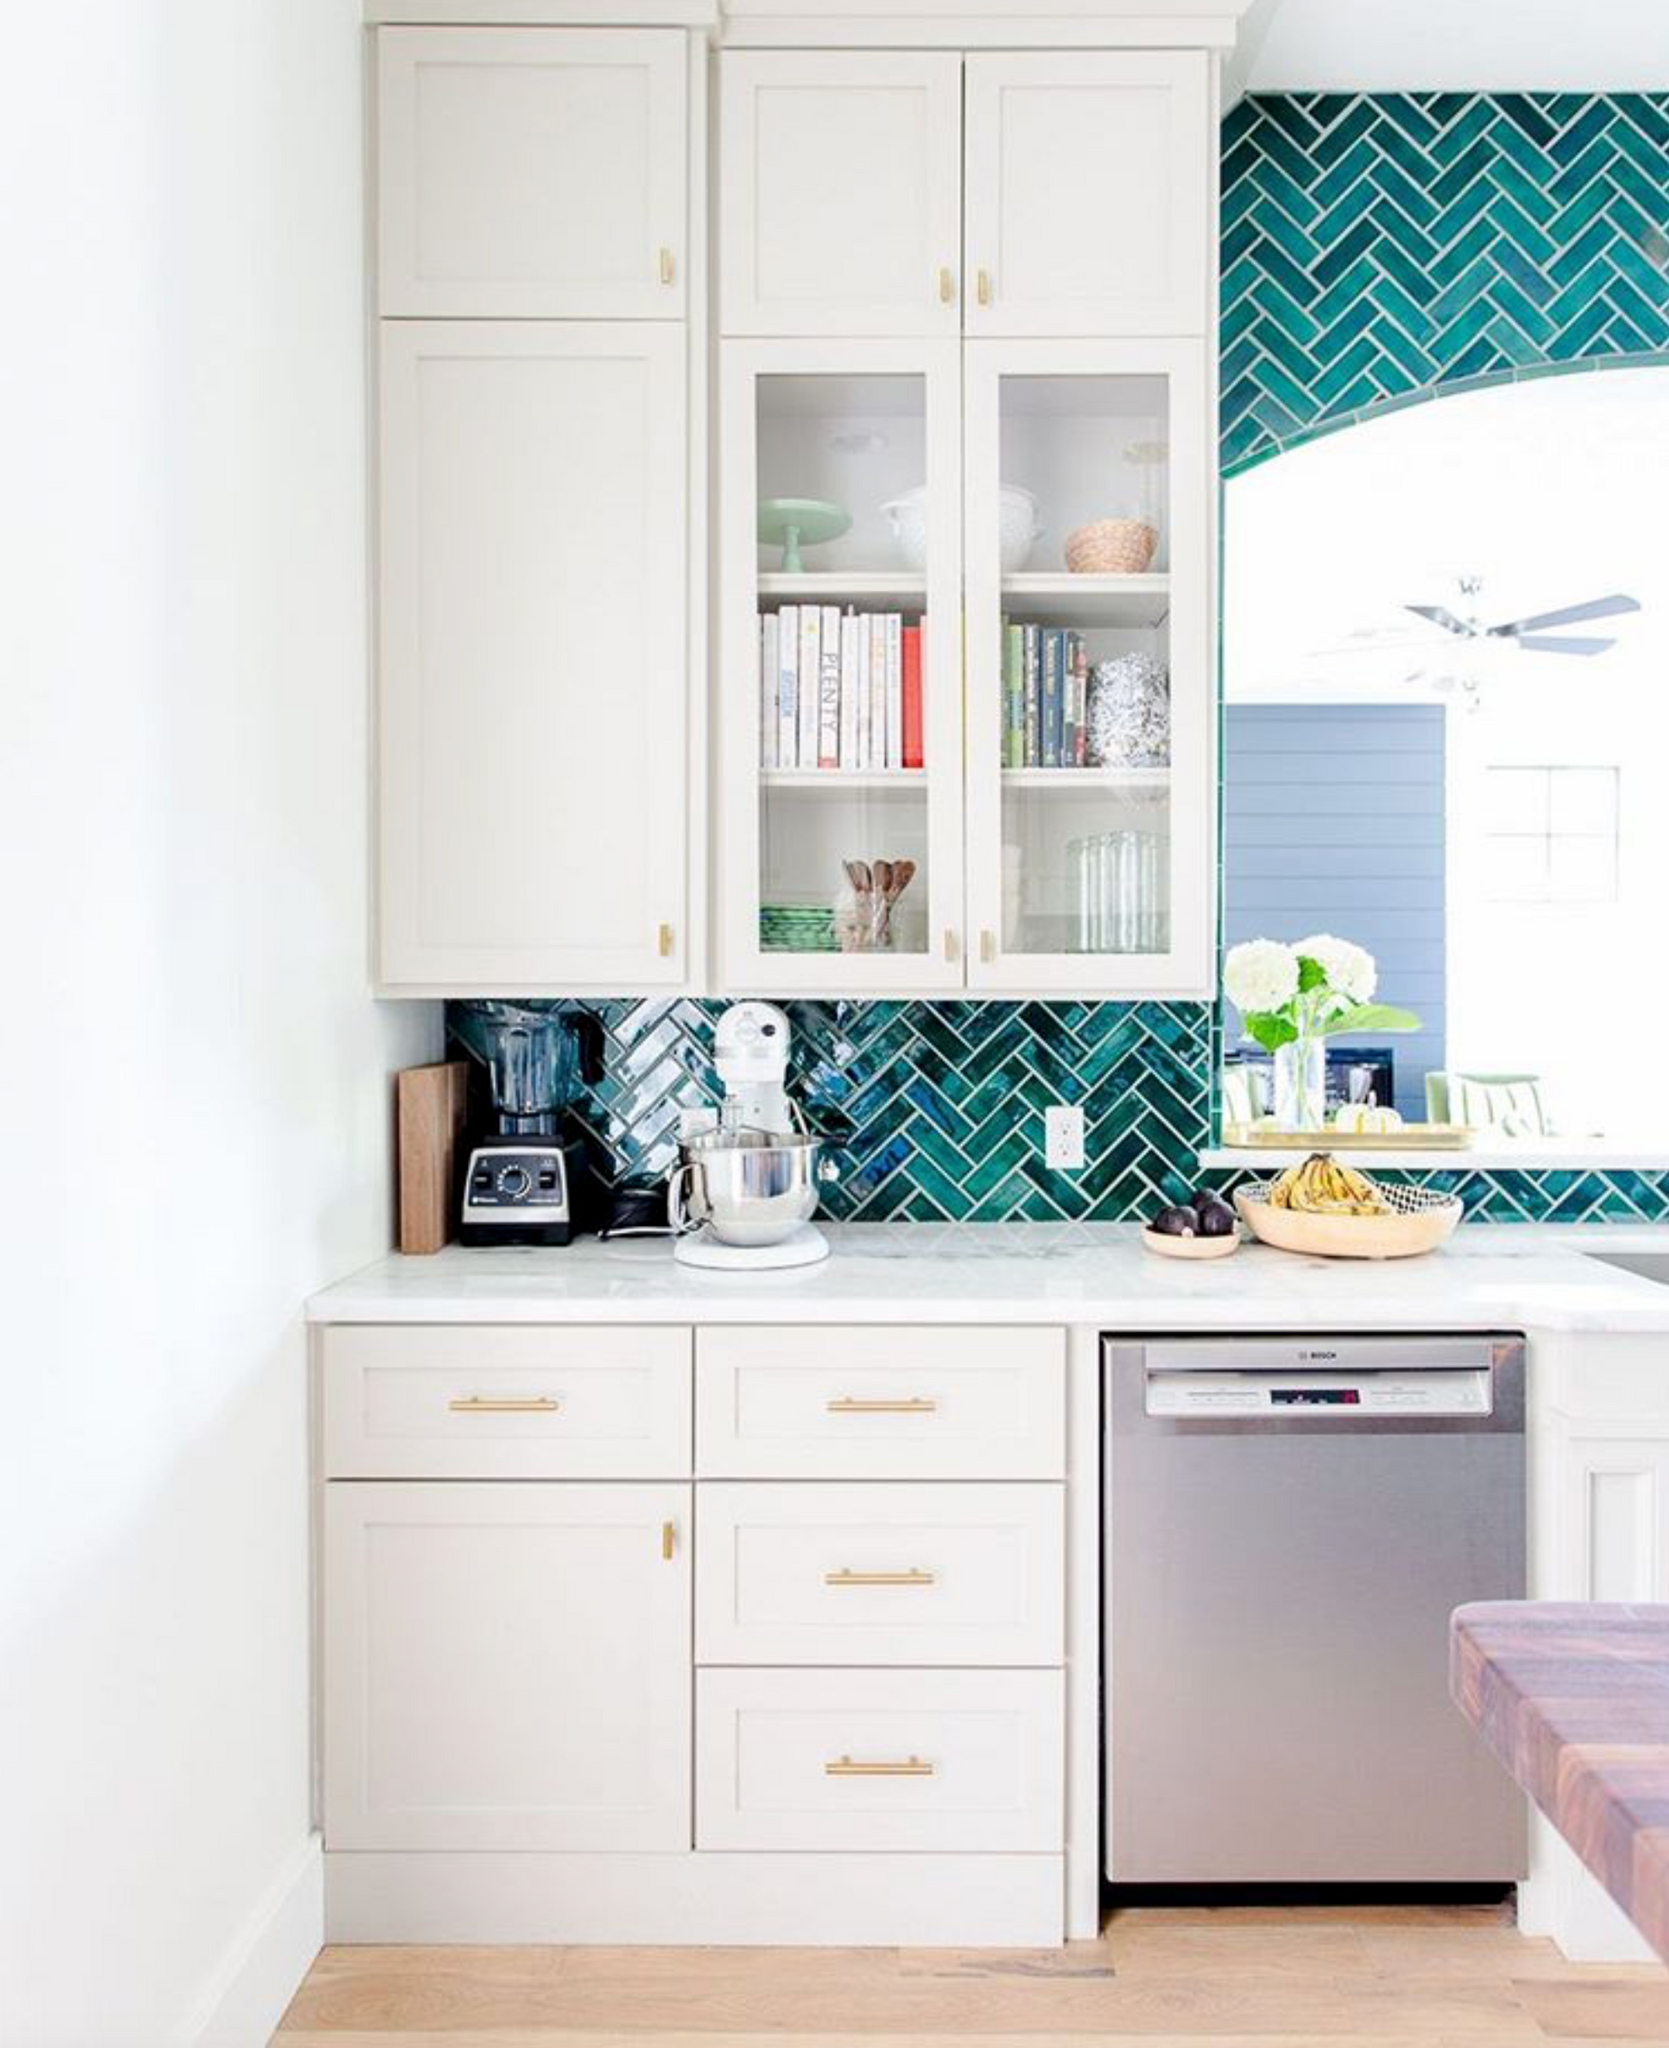 Teal Herringbone Tile Kitchen Backsplash